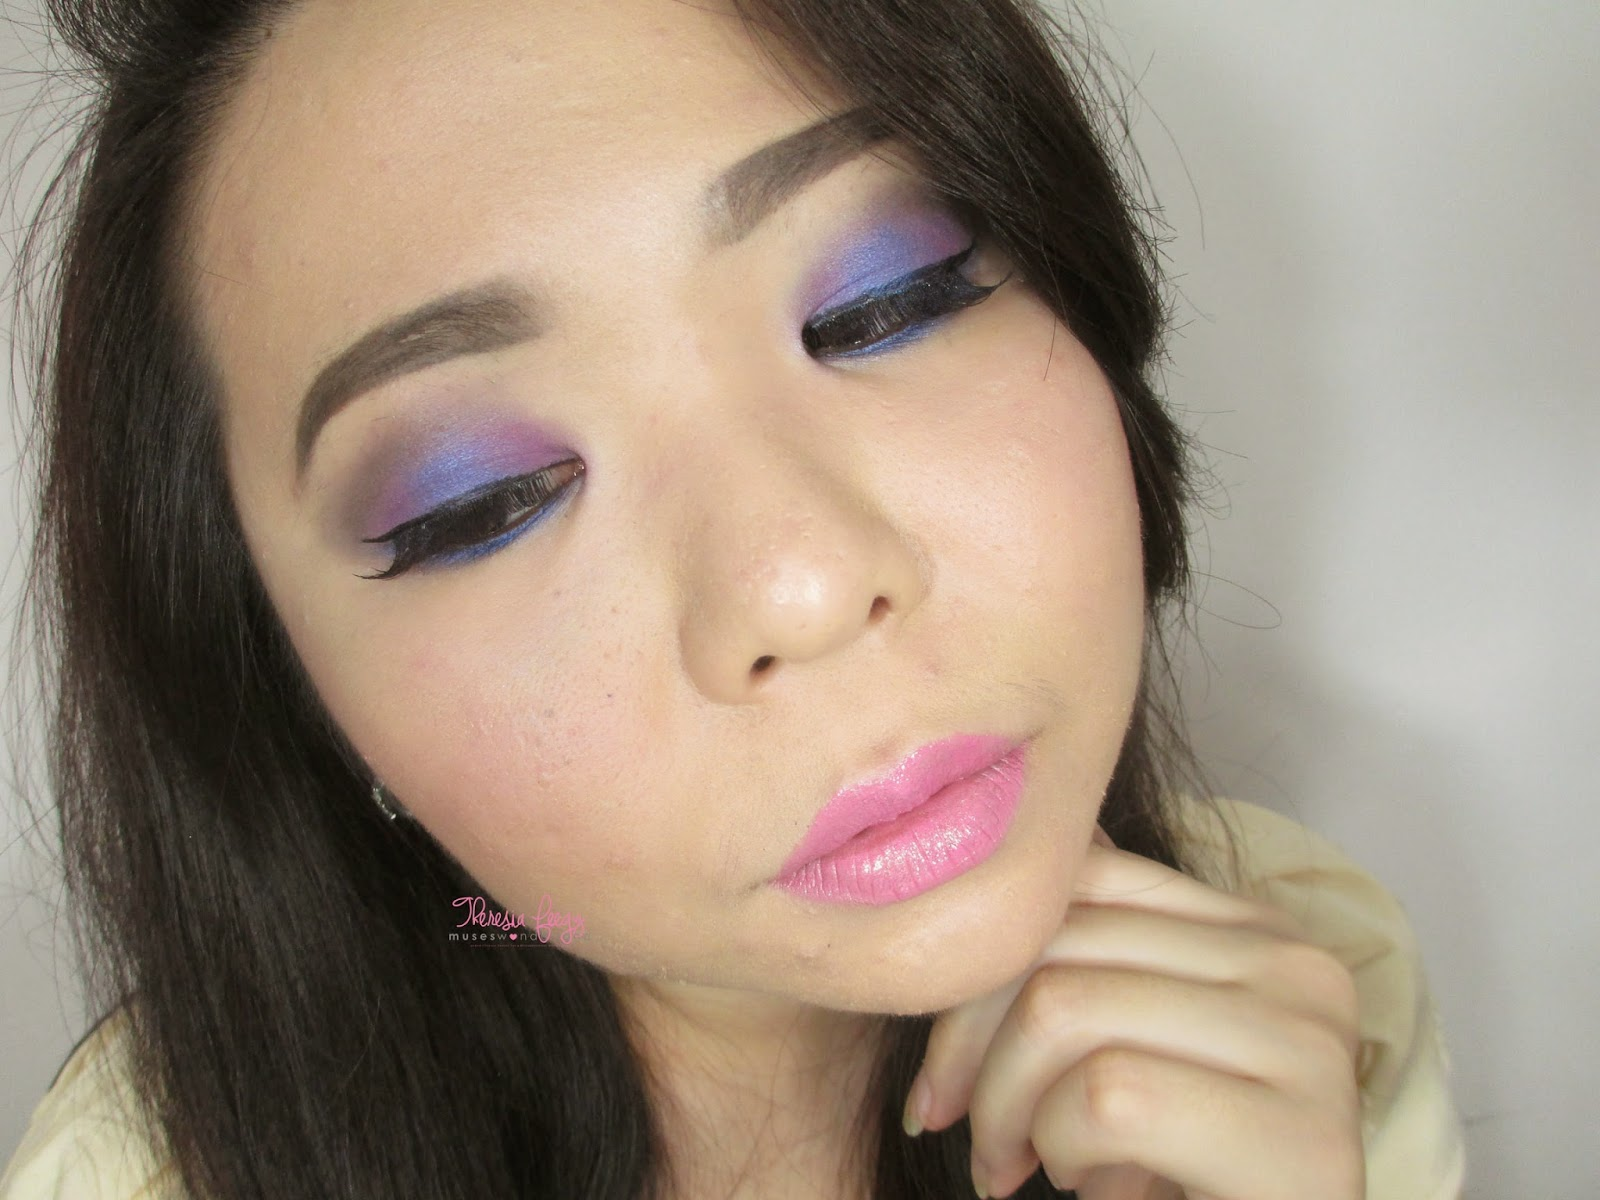 learn how to use a blue and purple to create a party makeup look. using only 1 trio eyeshadow palette from Makeover cosmetic indonesia. makeup tutorial is on youtube. mari kita belajar cara memakai eyehadow berwarna agar terlihat natural. biru dan ungu makeup mata. makeup mata romantis.